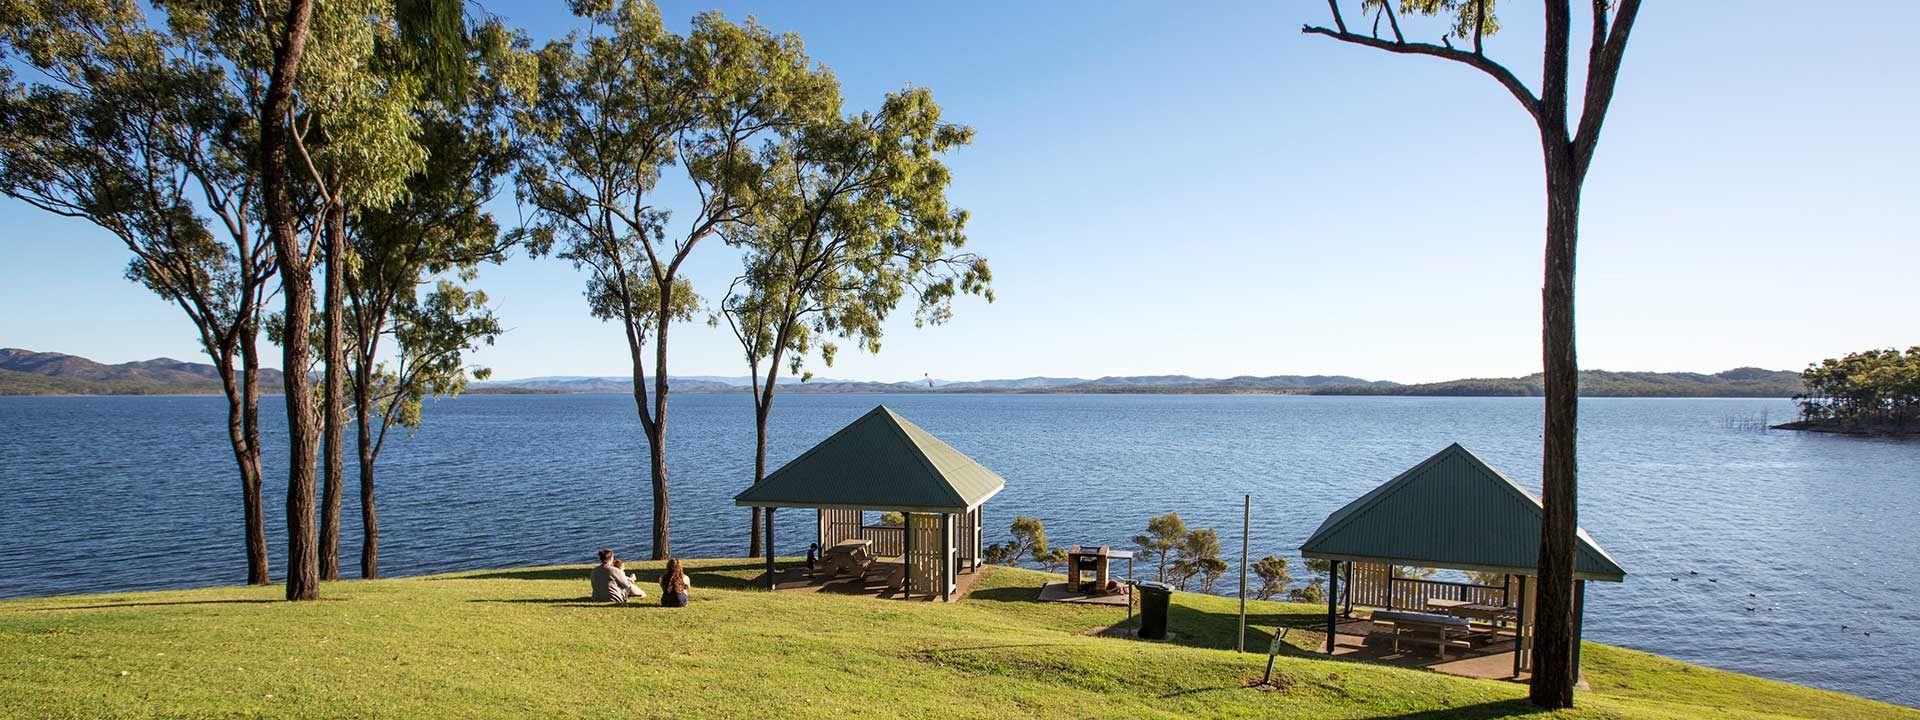 Have the perfect picnic at Awoonga Dam nearby Agnes Water